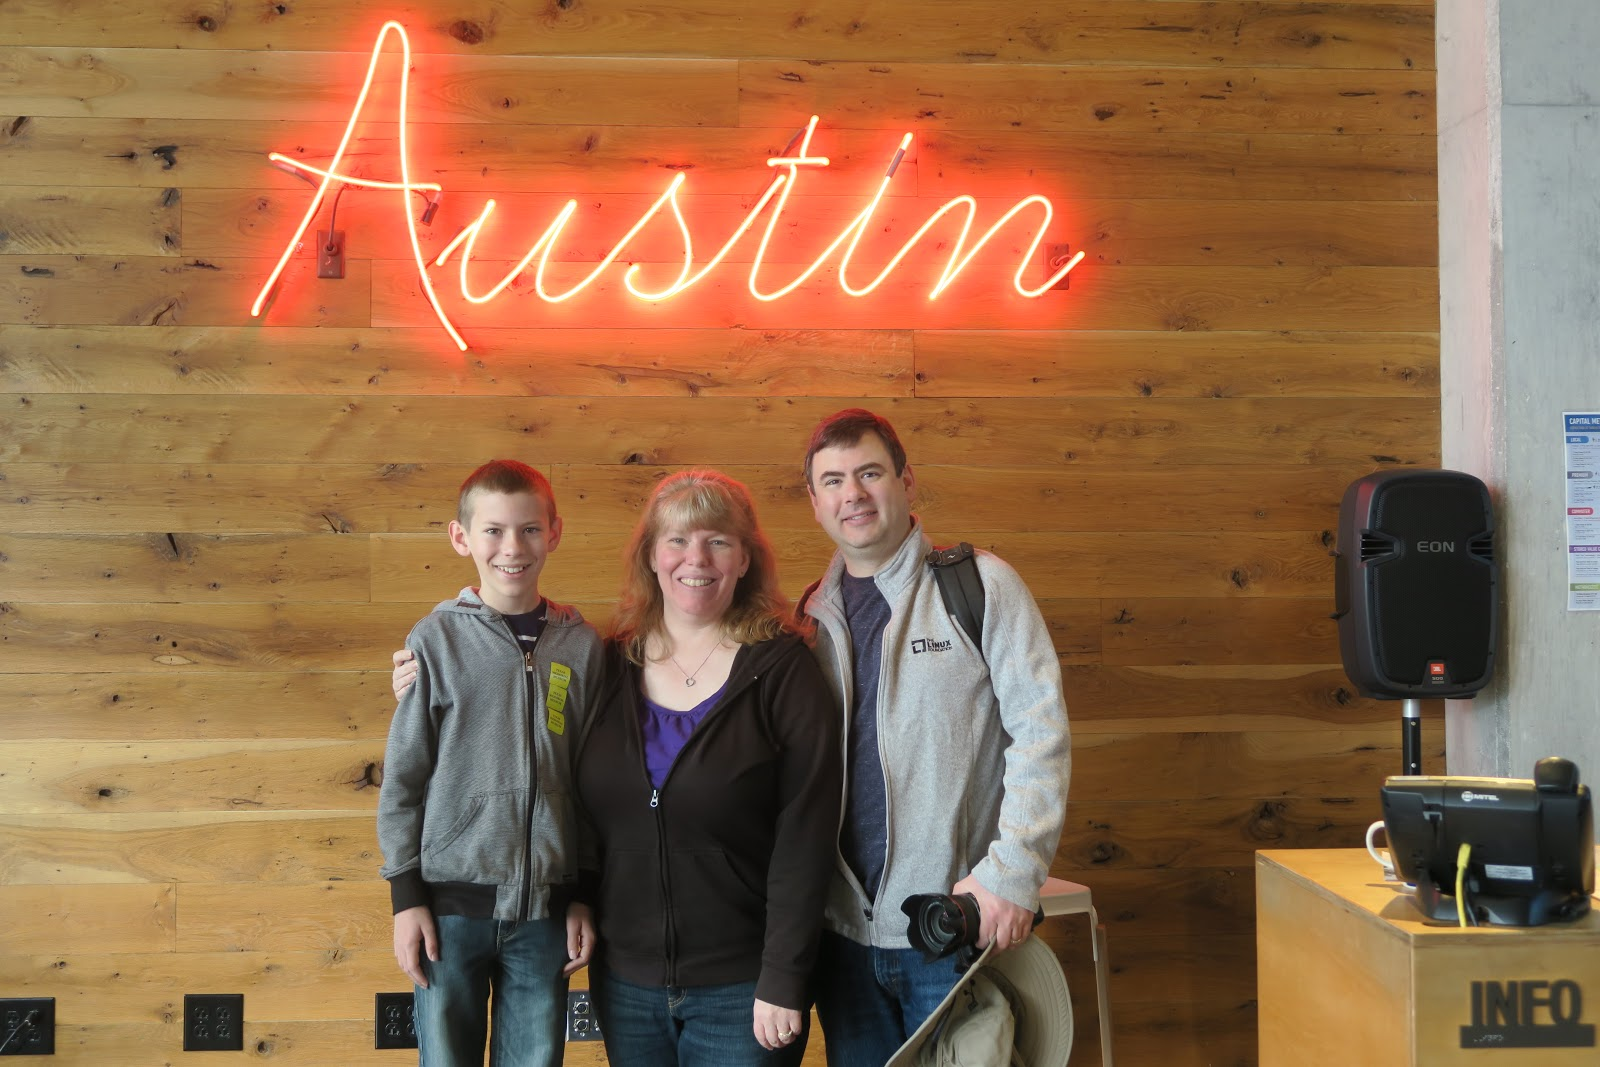 We Joined Two Other Families 11 People Total For The Real Austin Tour By Detours